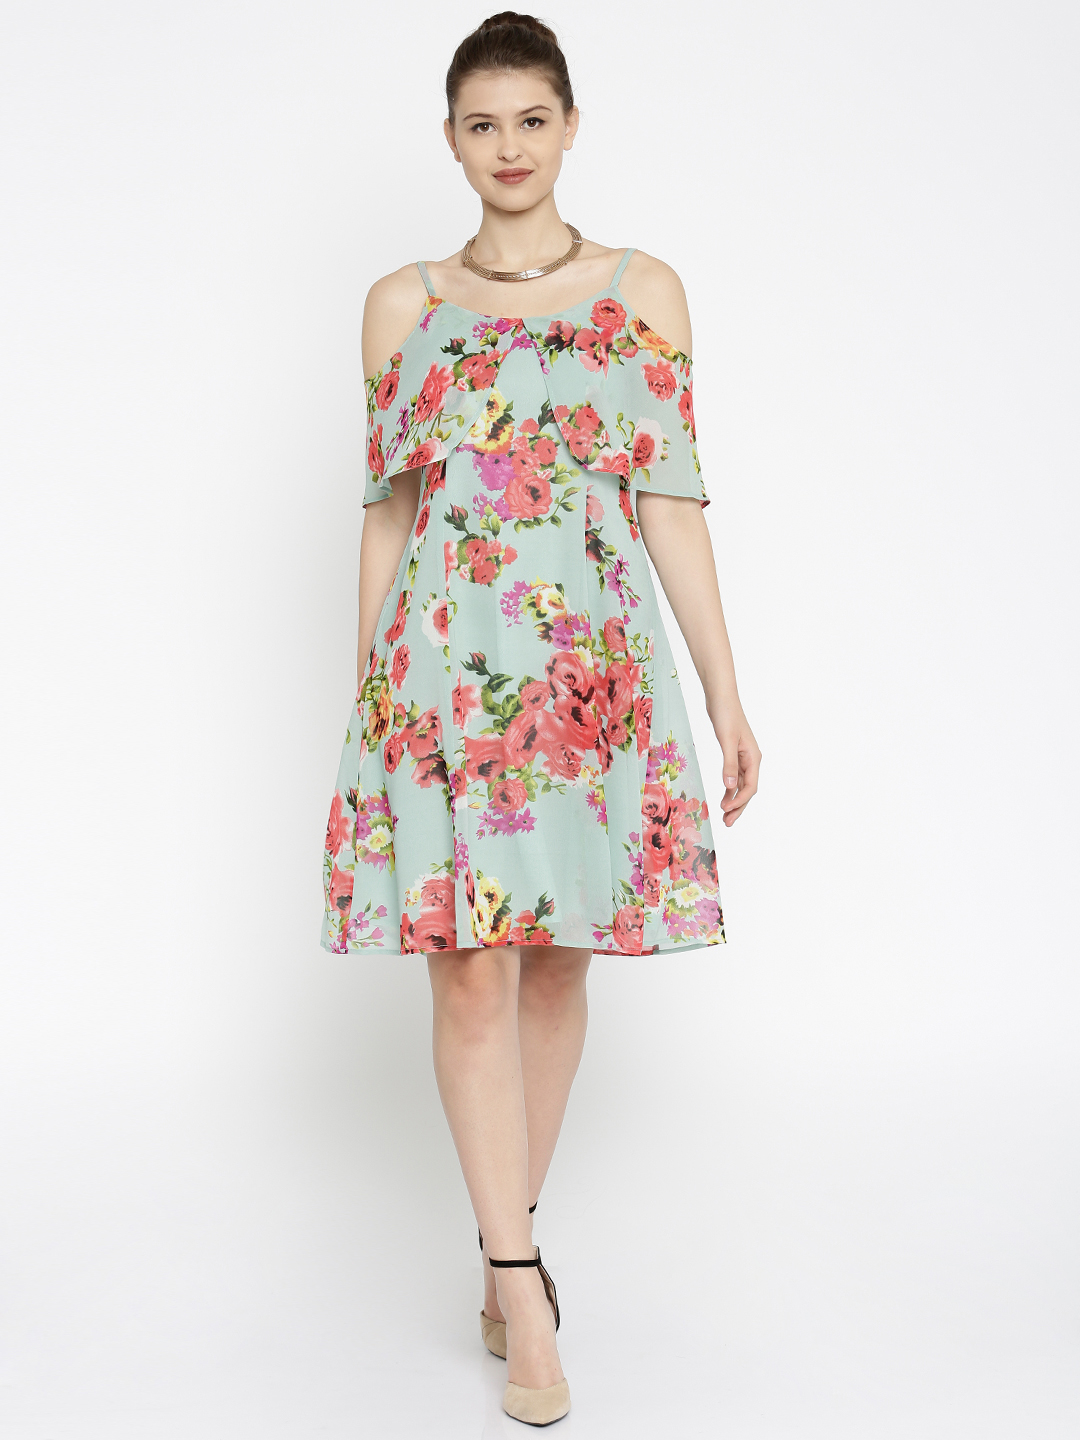 3-honeymoon-dresses-Green-Printed-Fit-and-Flare-Dress